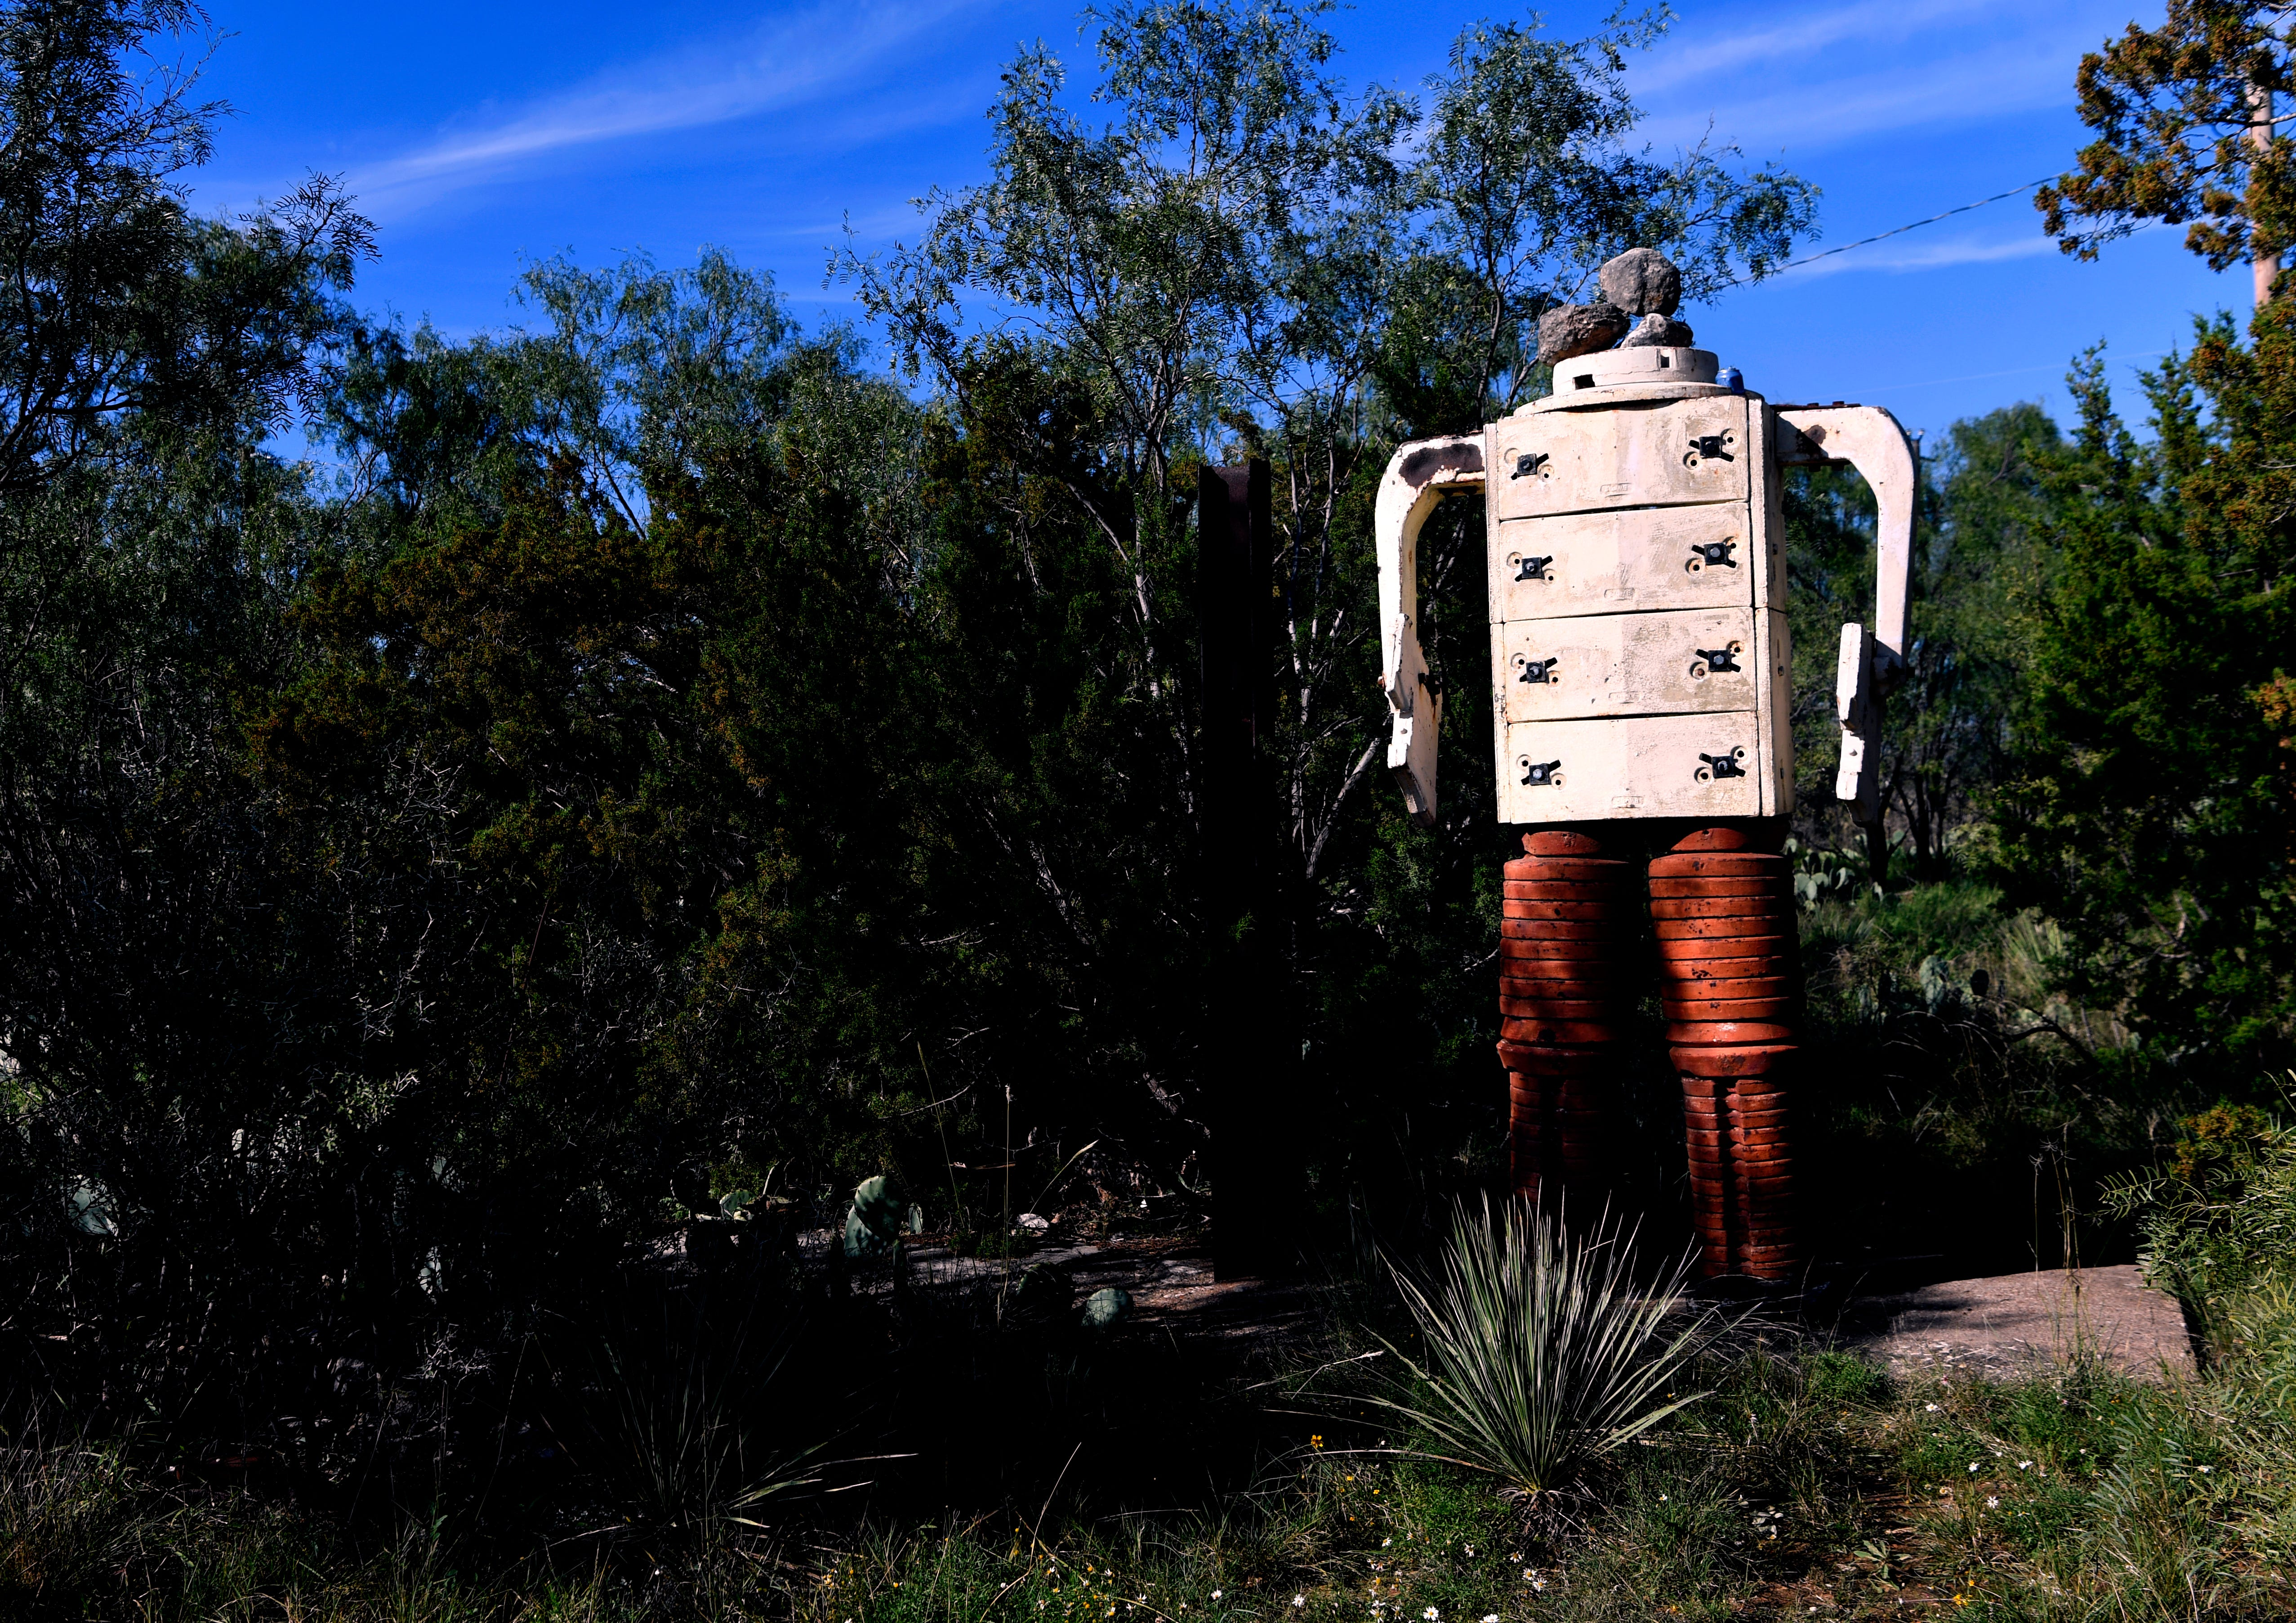 A robot made from oil field weights, but missing a head, stands near the edge of what remains of the Coke County community of Sanco. While people live in the area, a church is the only semi-official building left there.